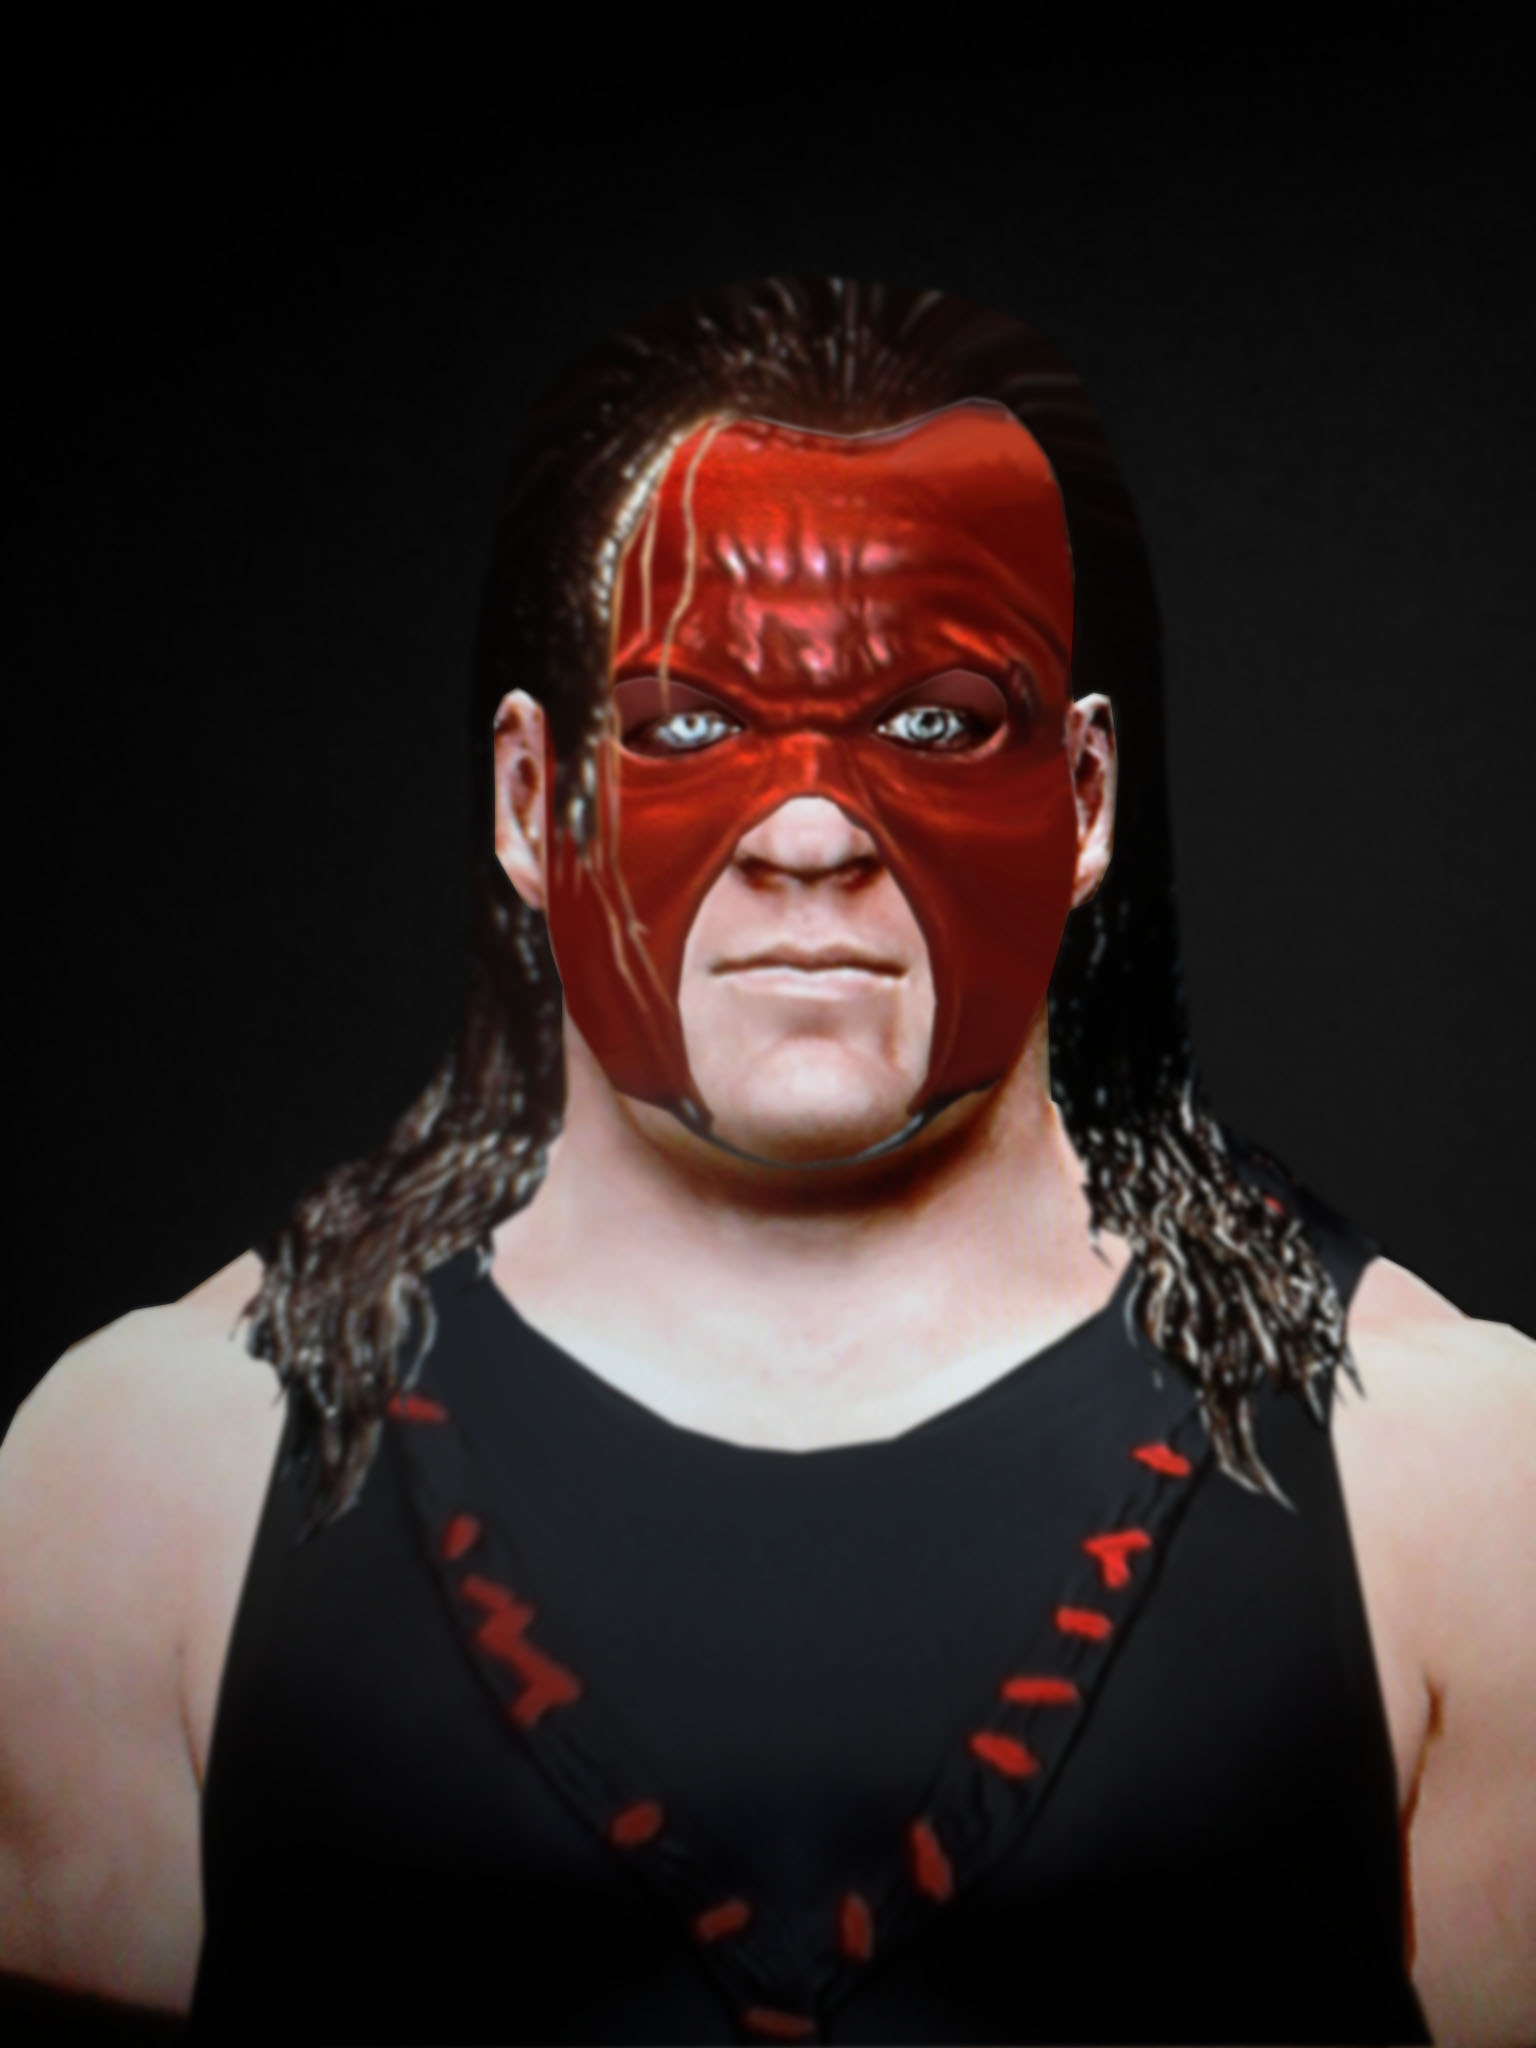 wwe kane hd wallpaper desktop